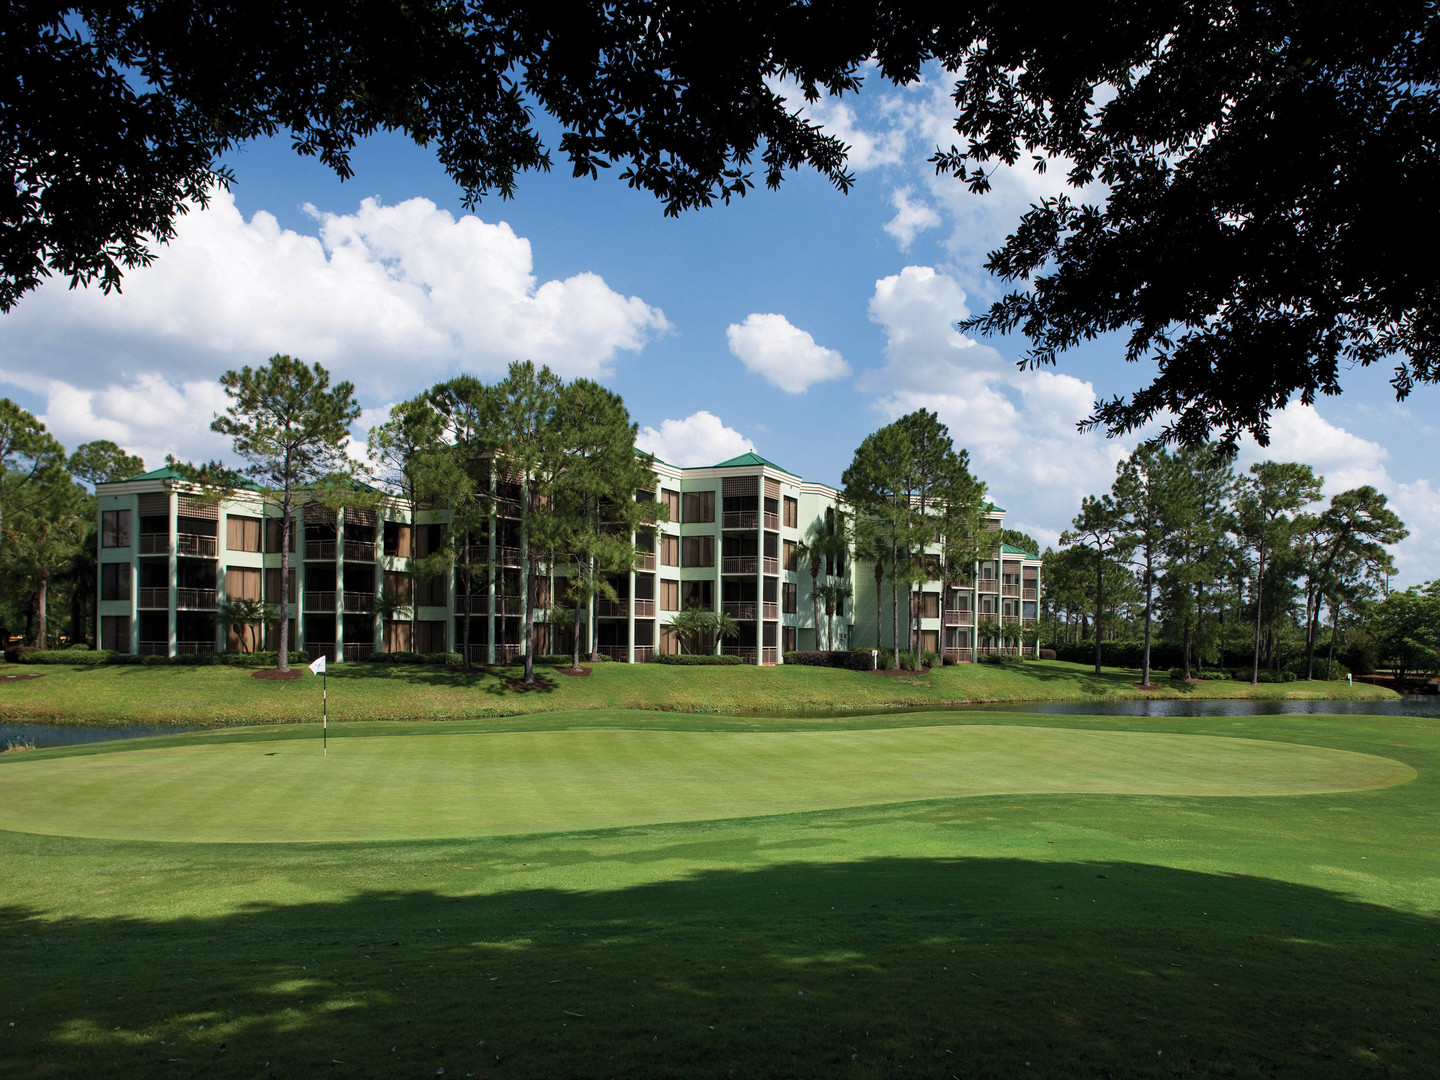 Marriott's Royal Palms The 16th Hole. Marriott's Royal Palms is located in Orlando, Florida United States.